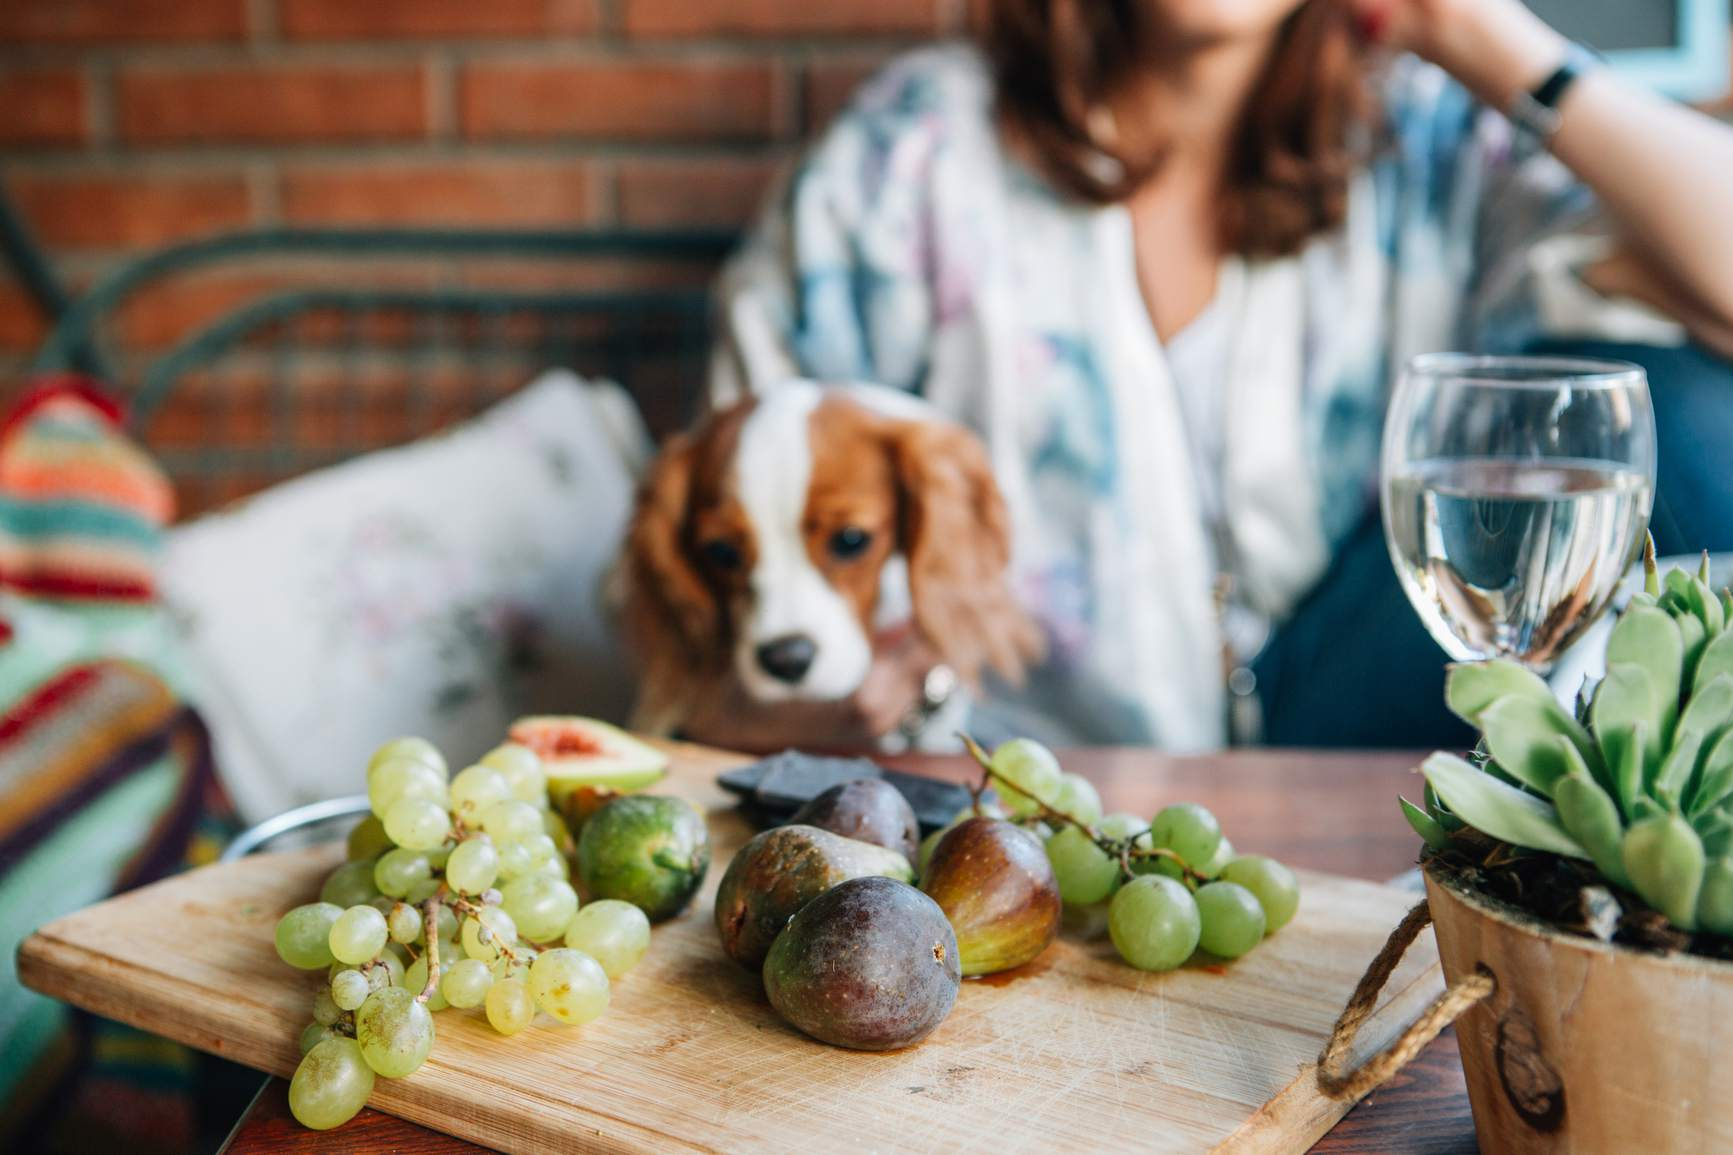 Dog staring at grapes and figs on a cutting board.